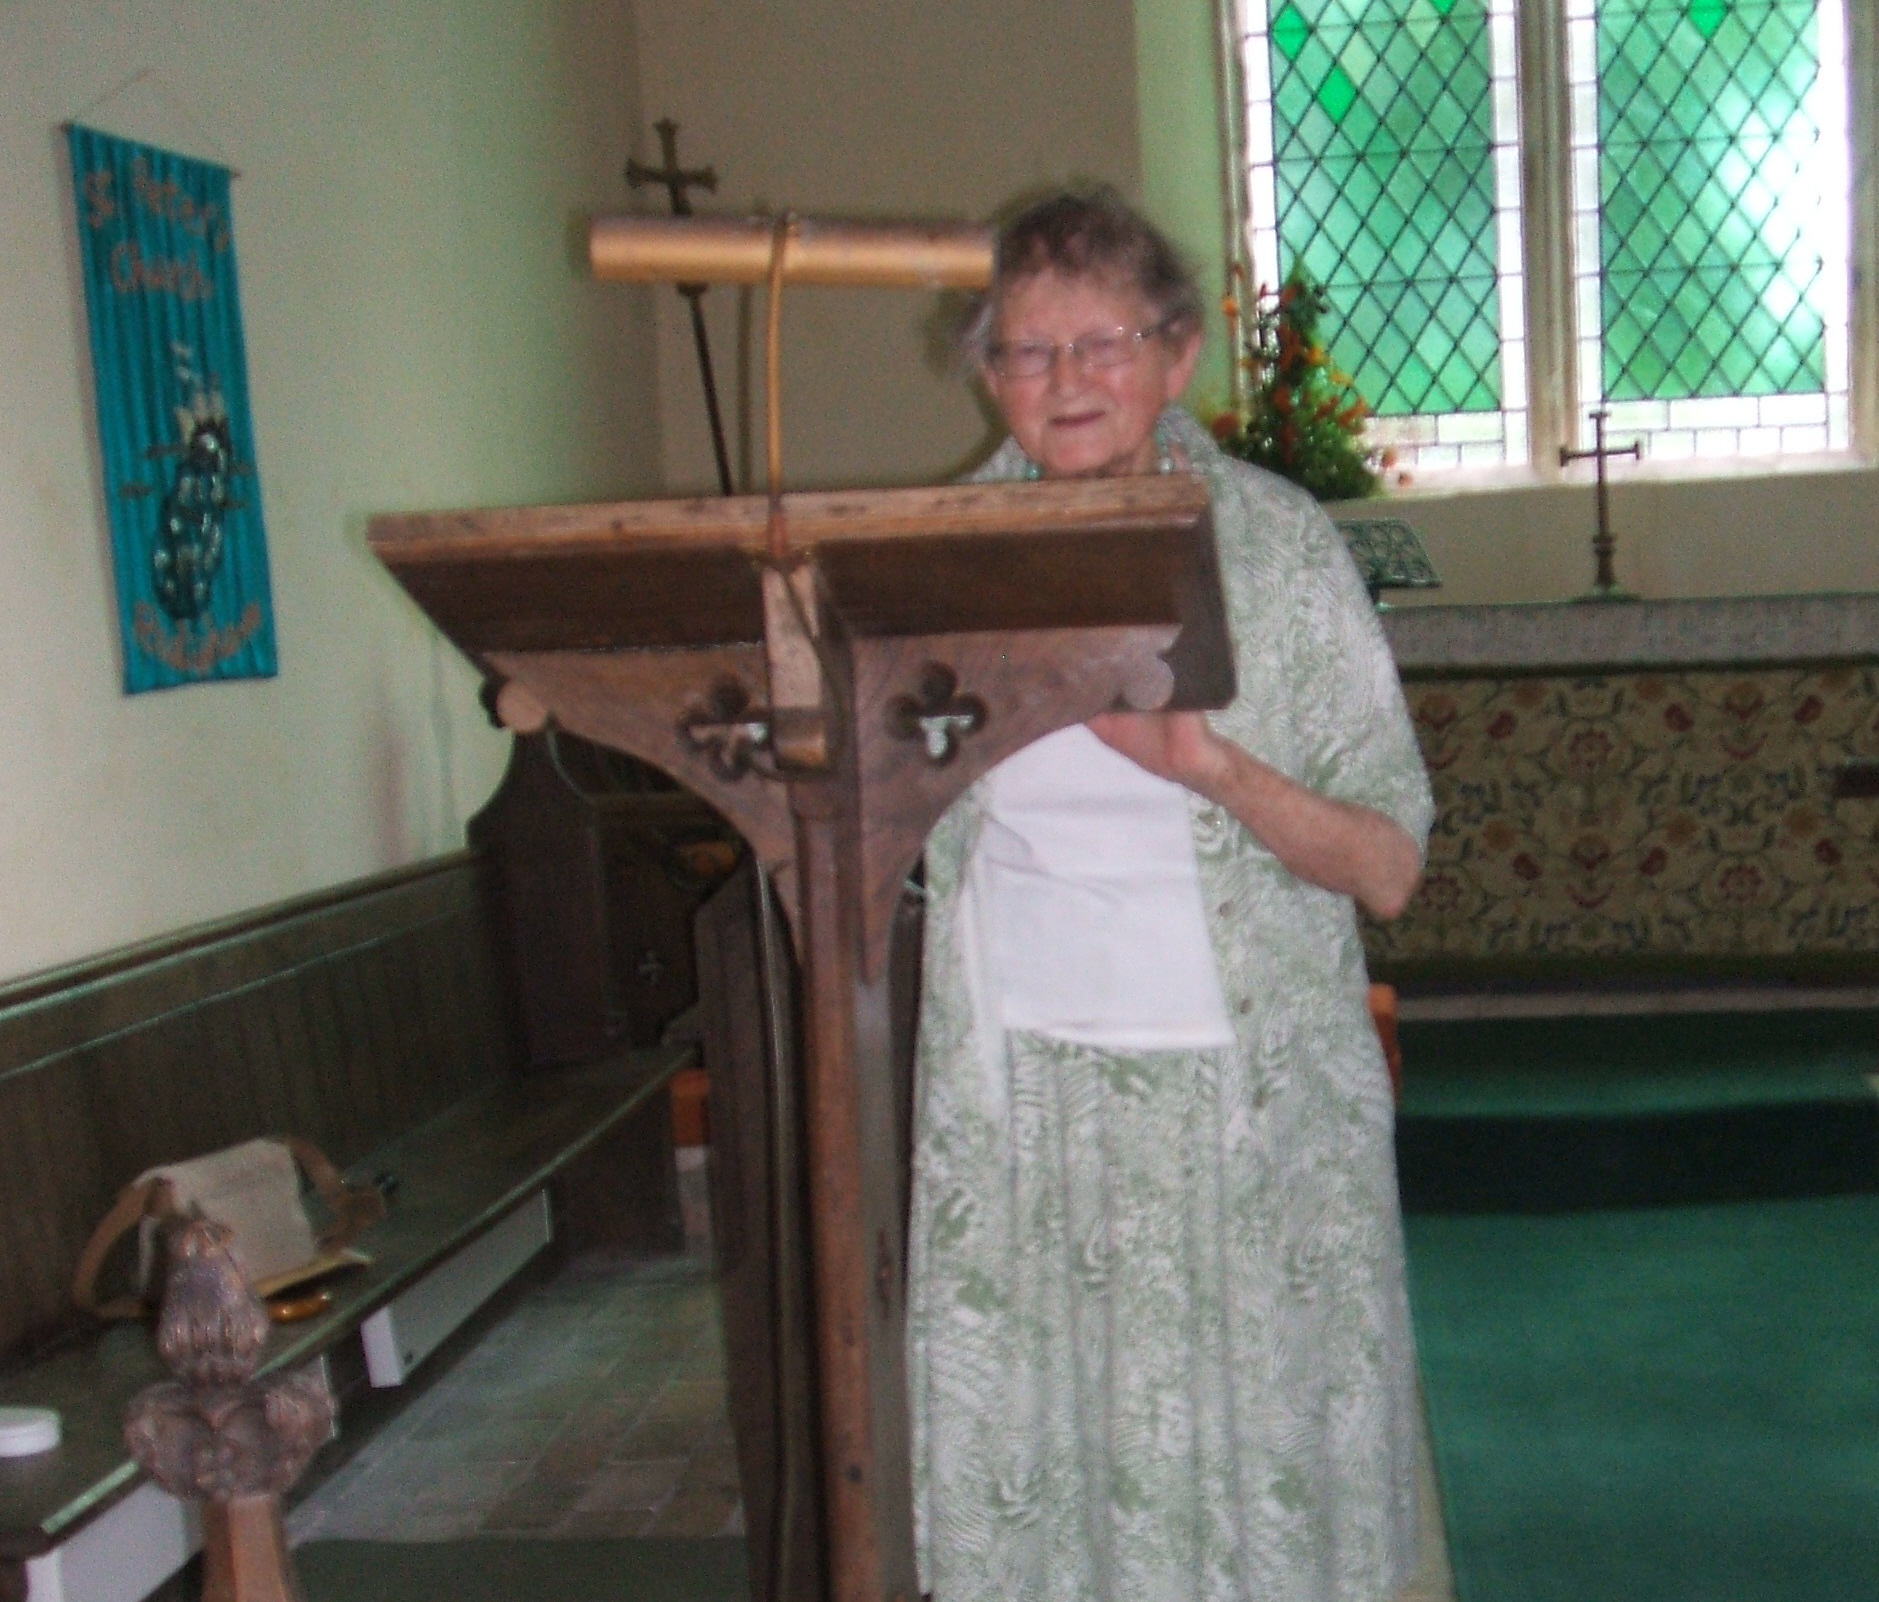 Angela Ottaway, Land Army girl now 92, reading a war poem at Redisham church.